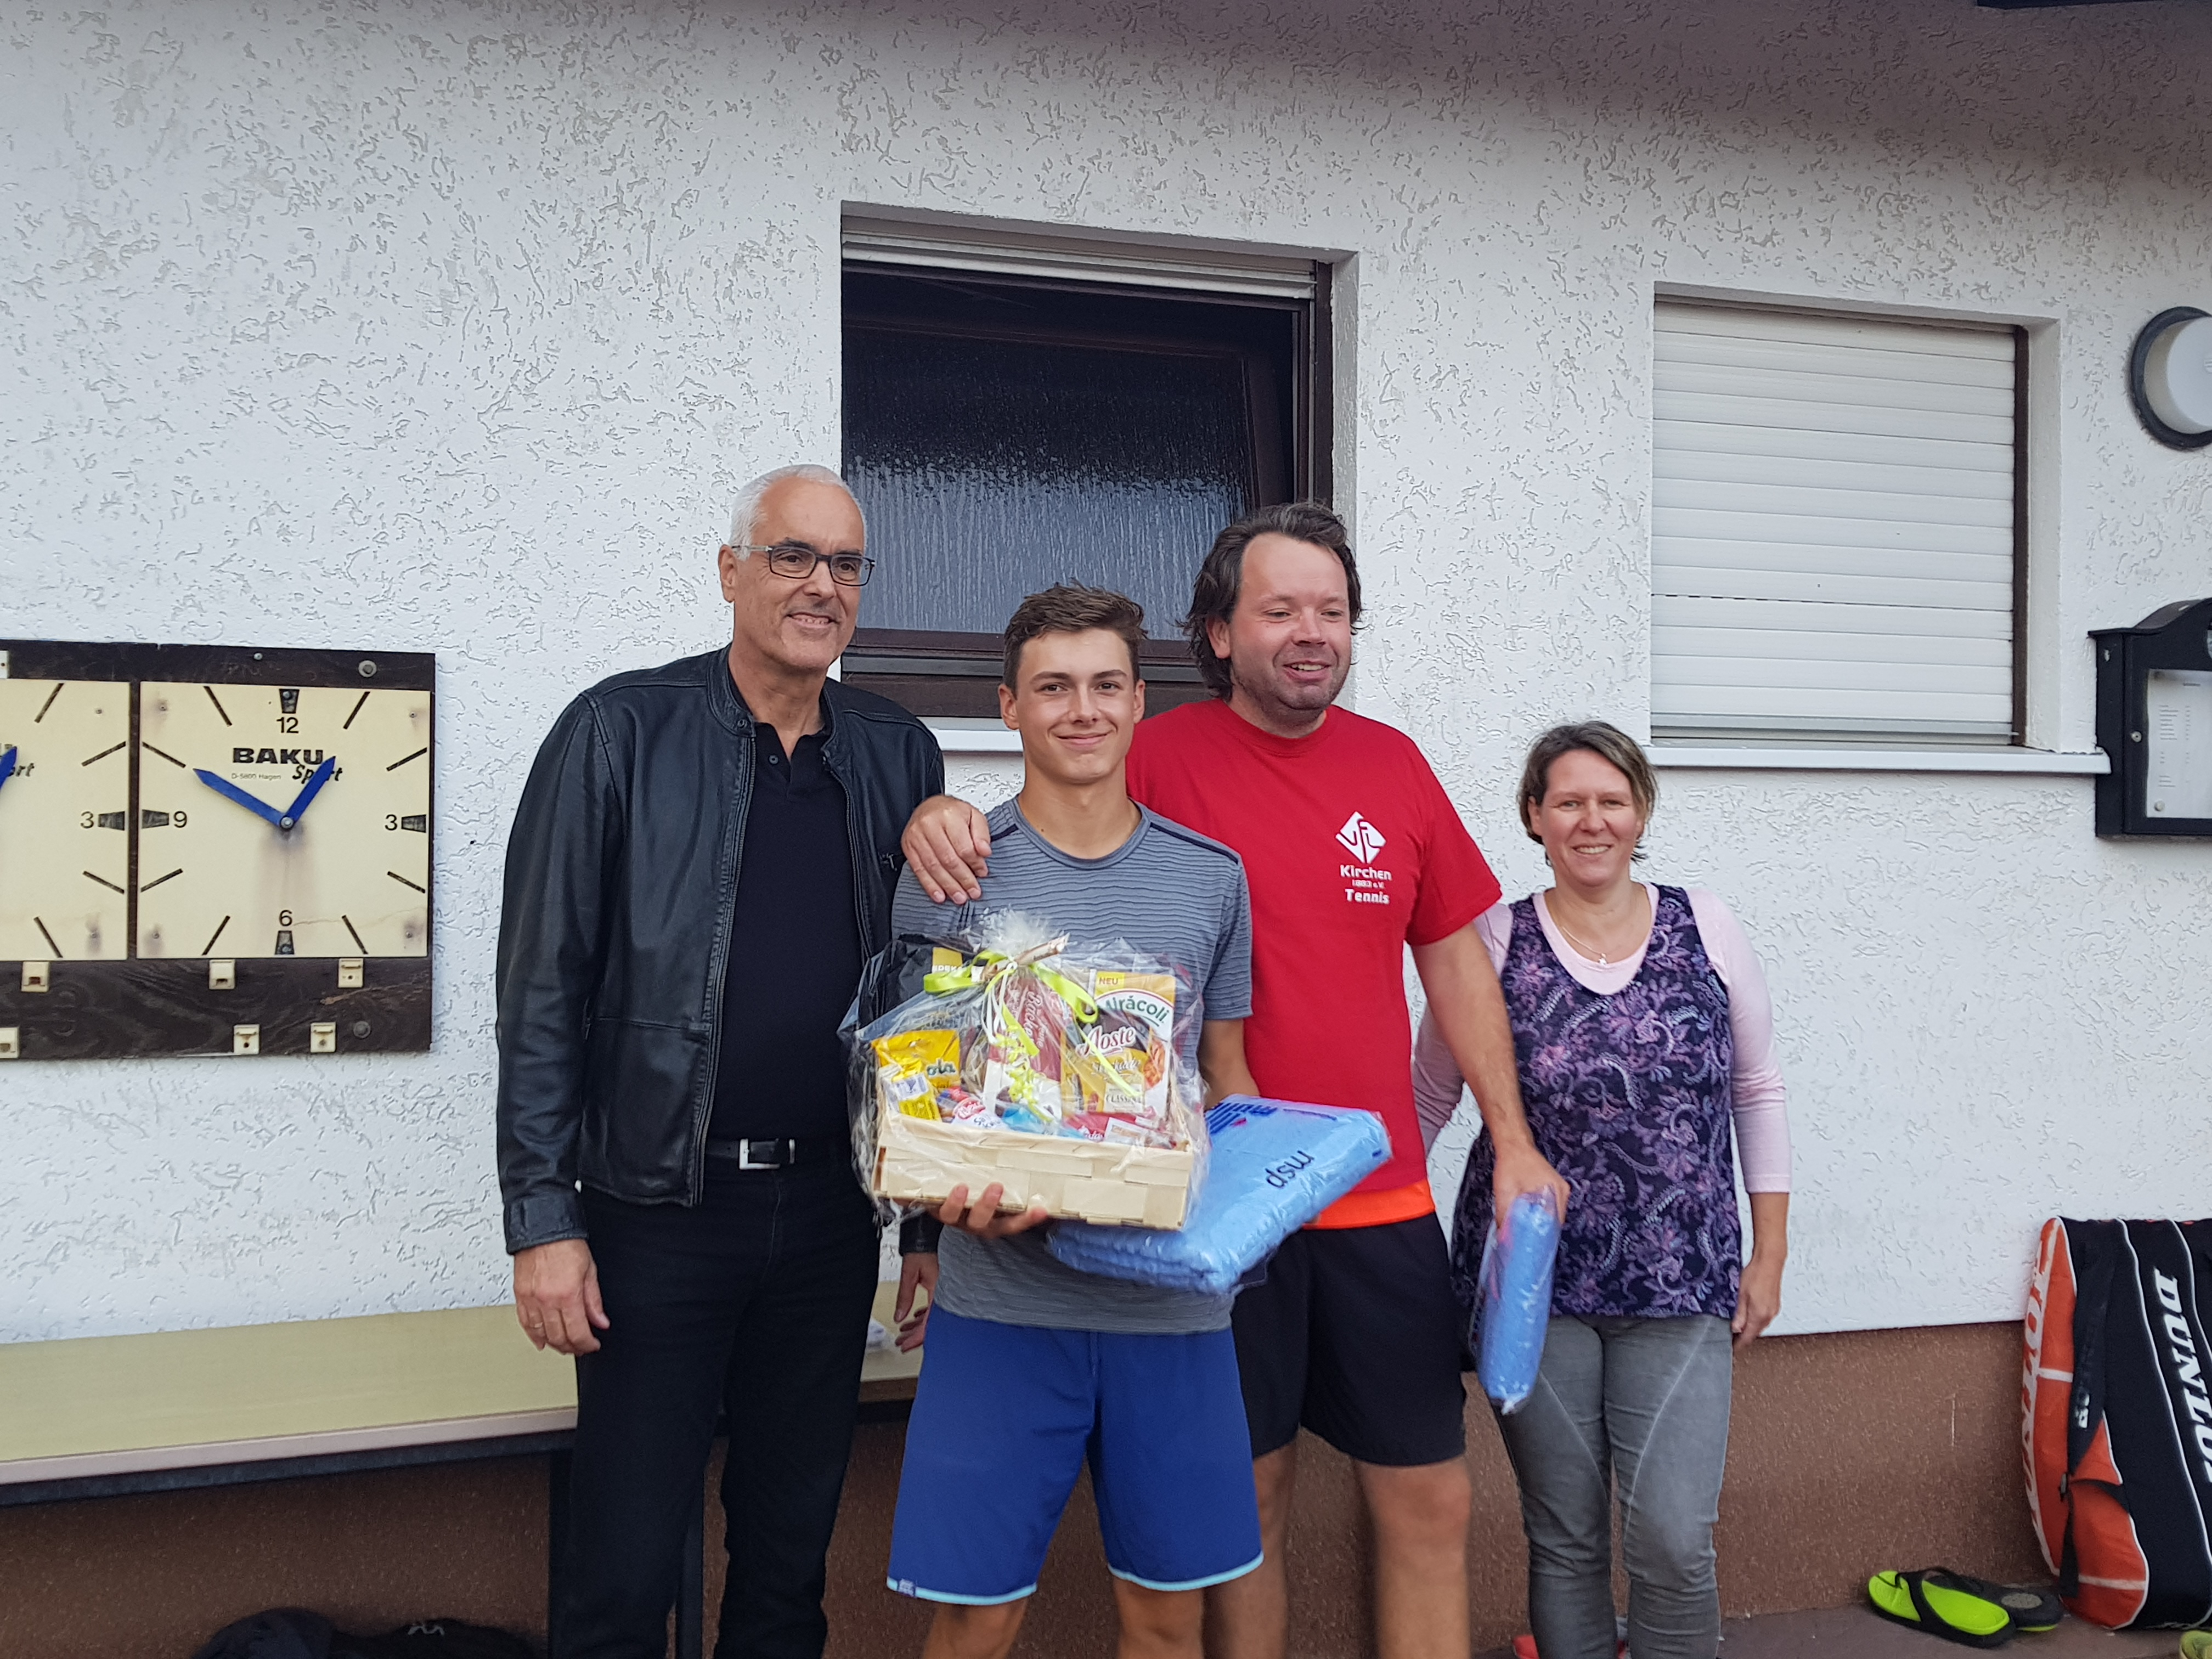 Siegerbild David - Ingo Gross - msp-Cup Kirchen 260818